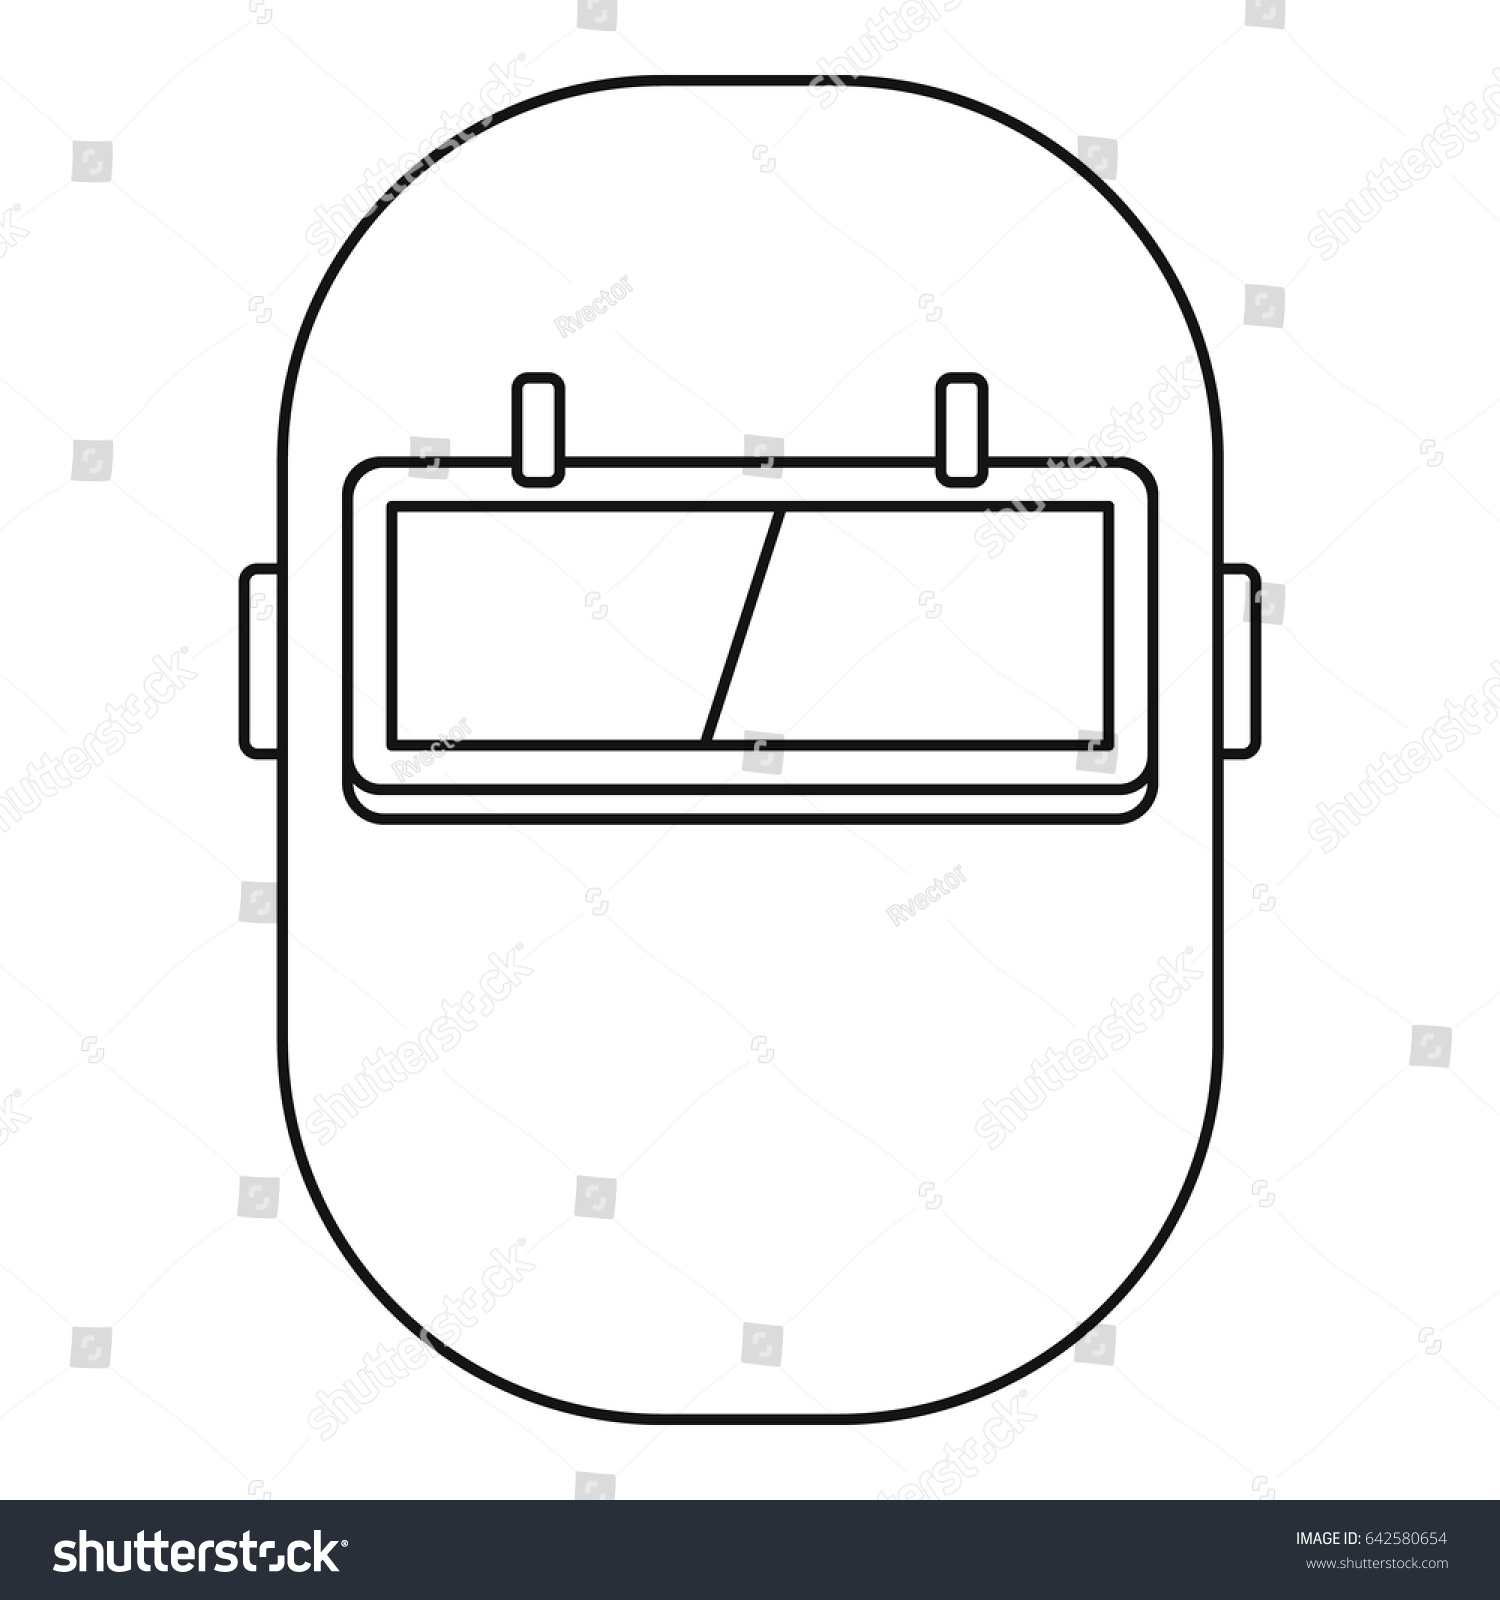 welding shield diagram welding mask icon outline style isolated stock vector  royalty  welding mask icon outline style